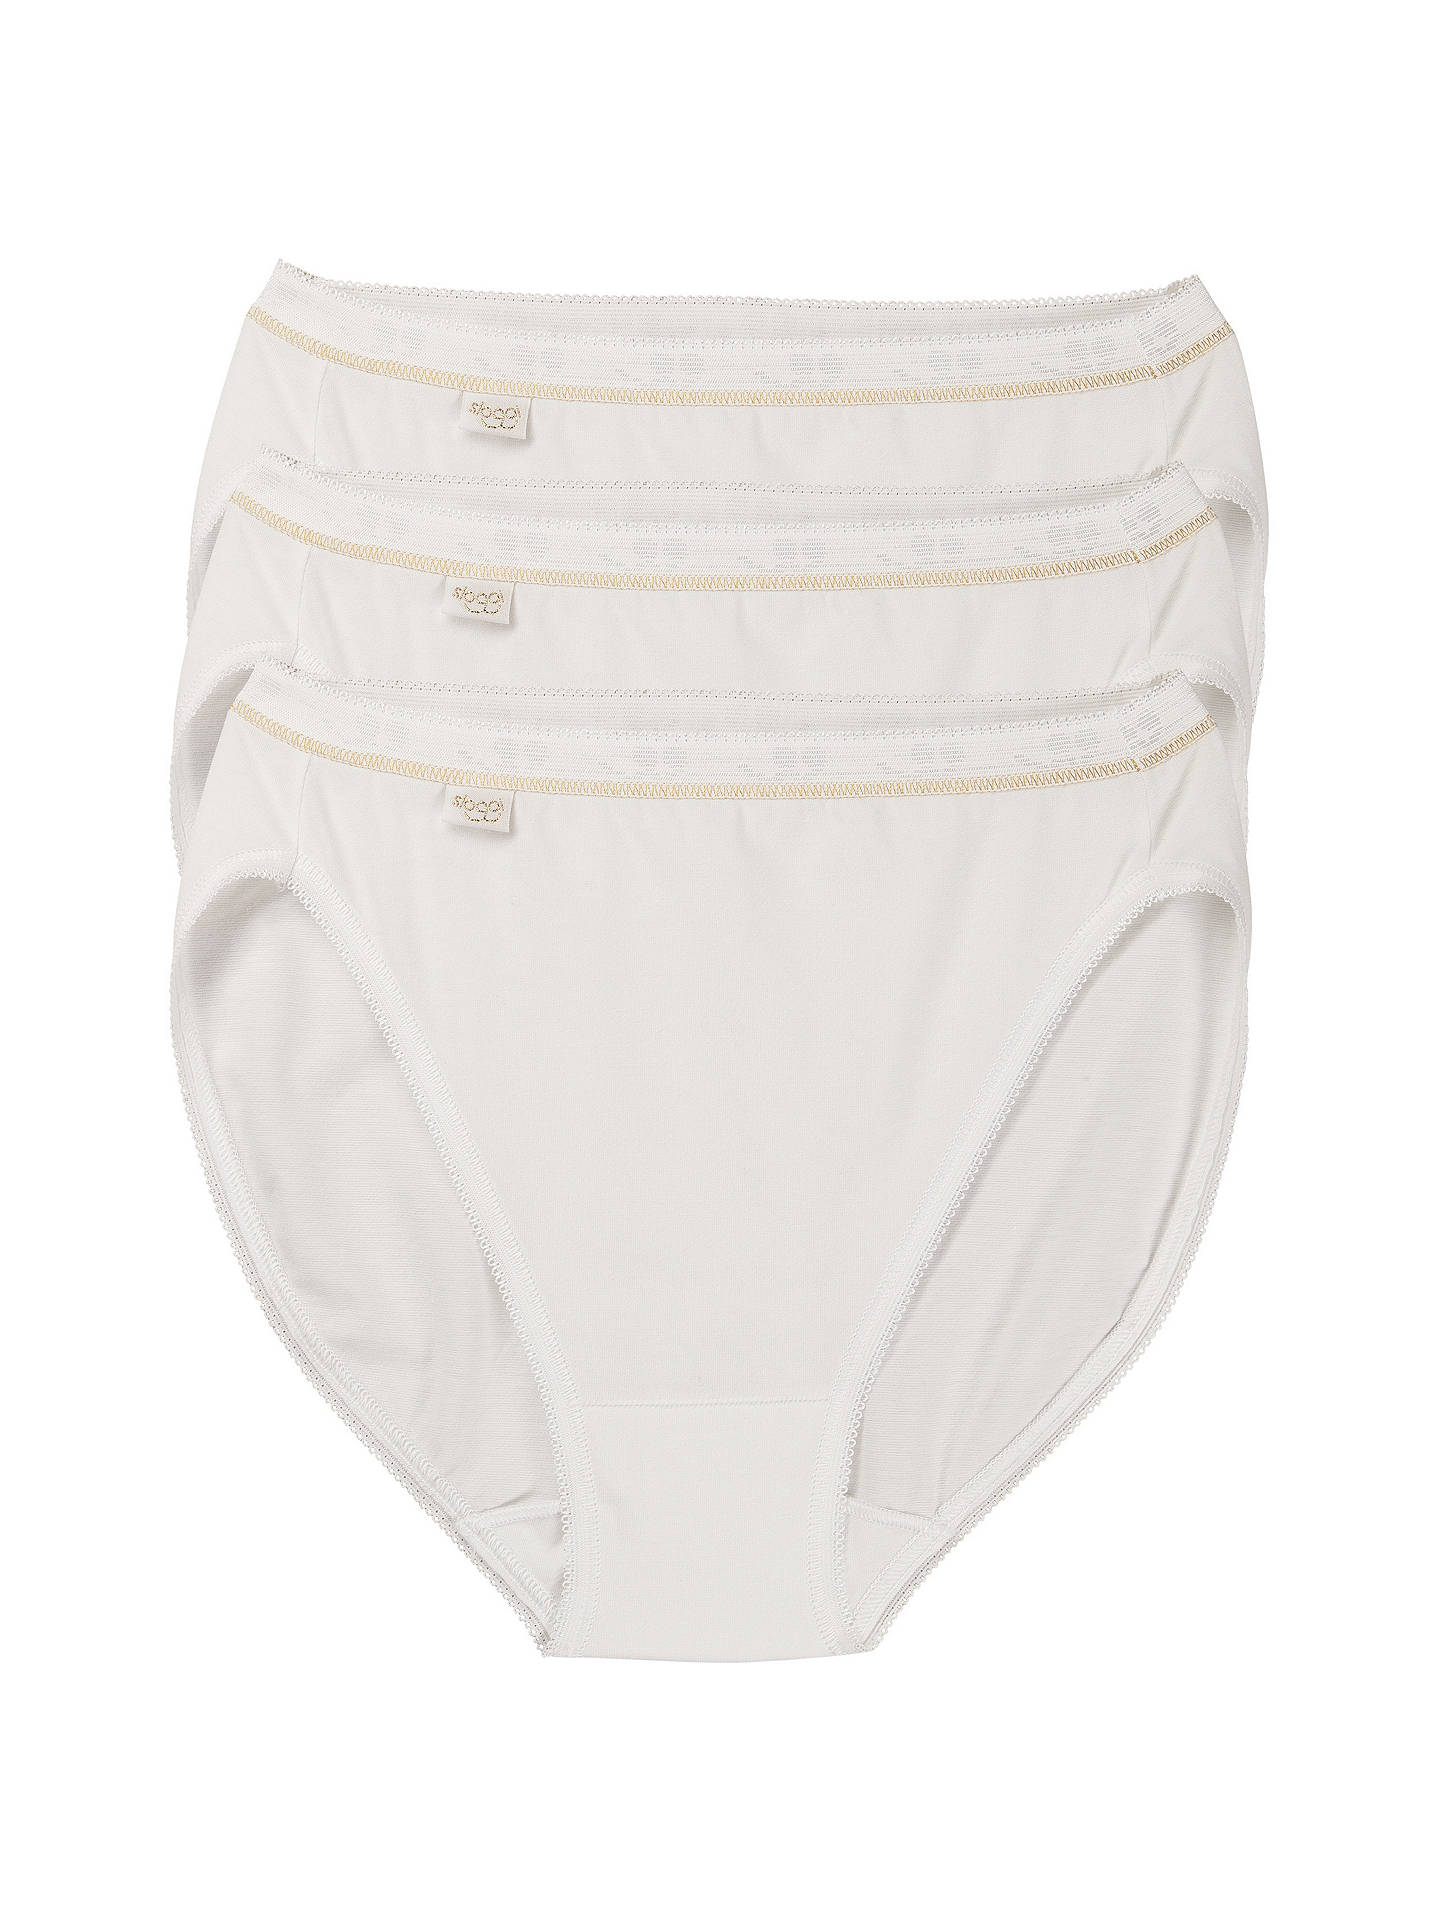 Sloggi Womens Feel Natural Tai Brief 3 Pack White